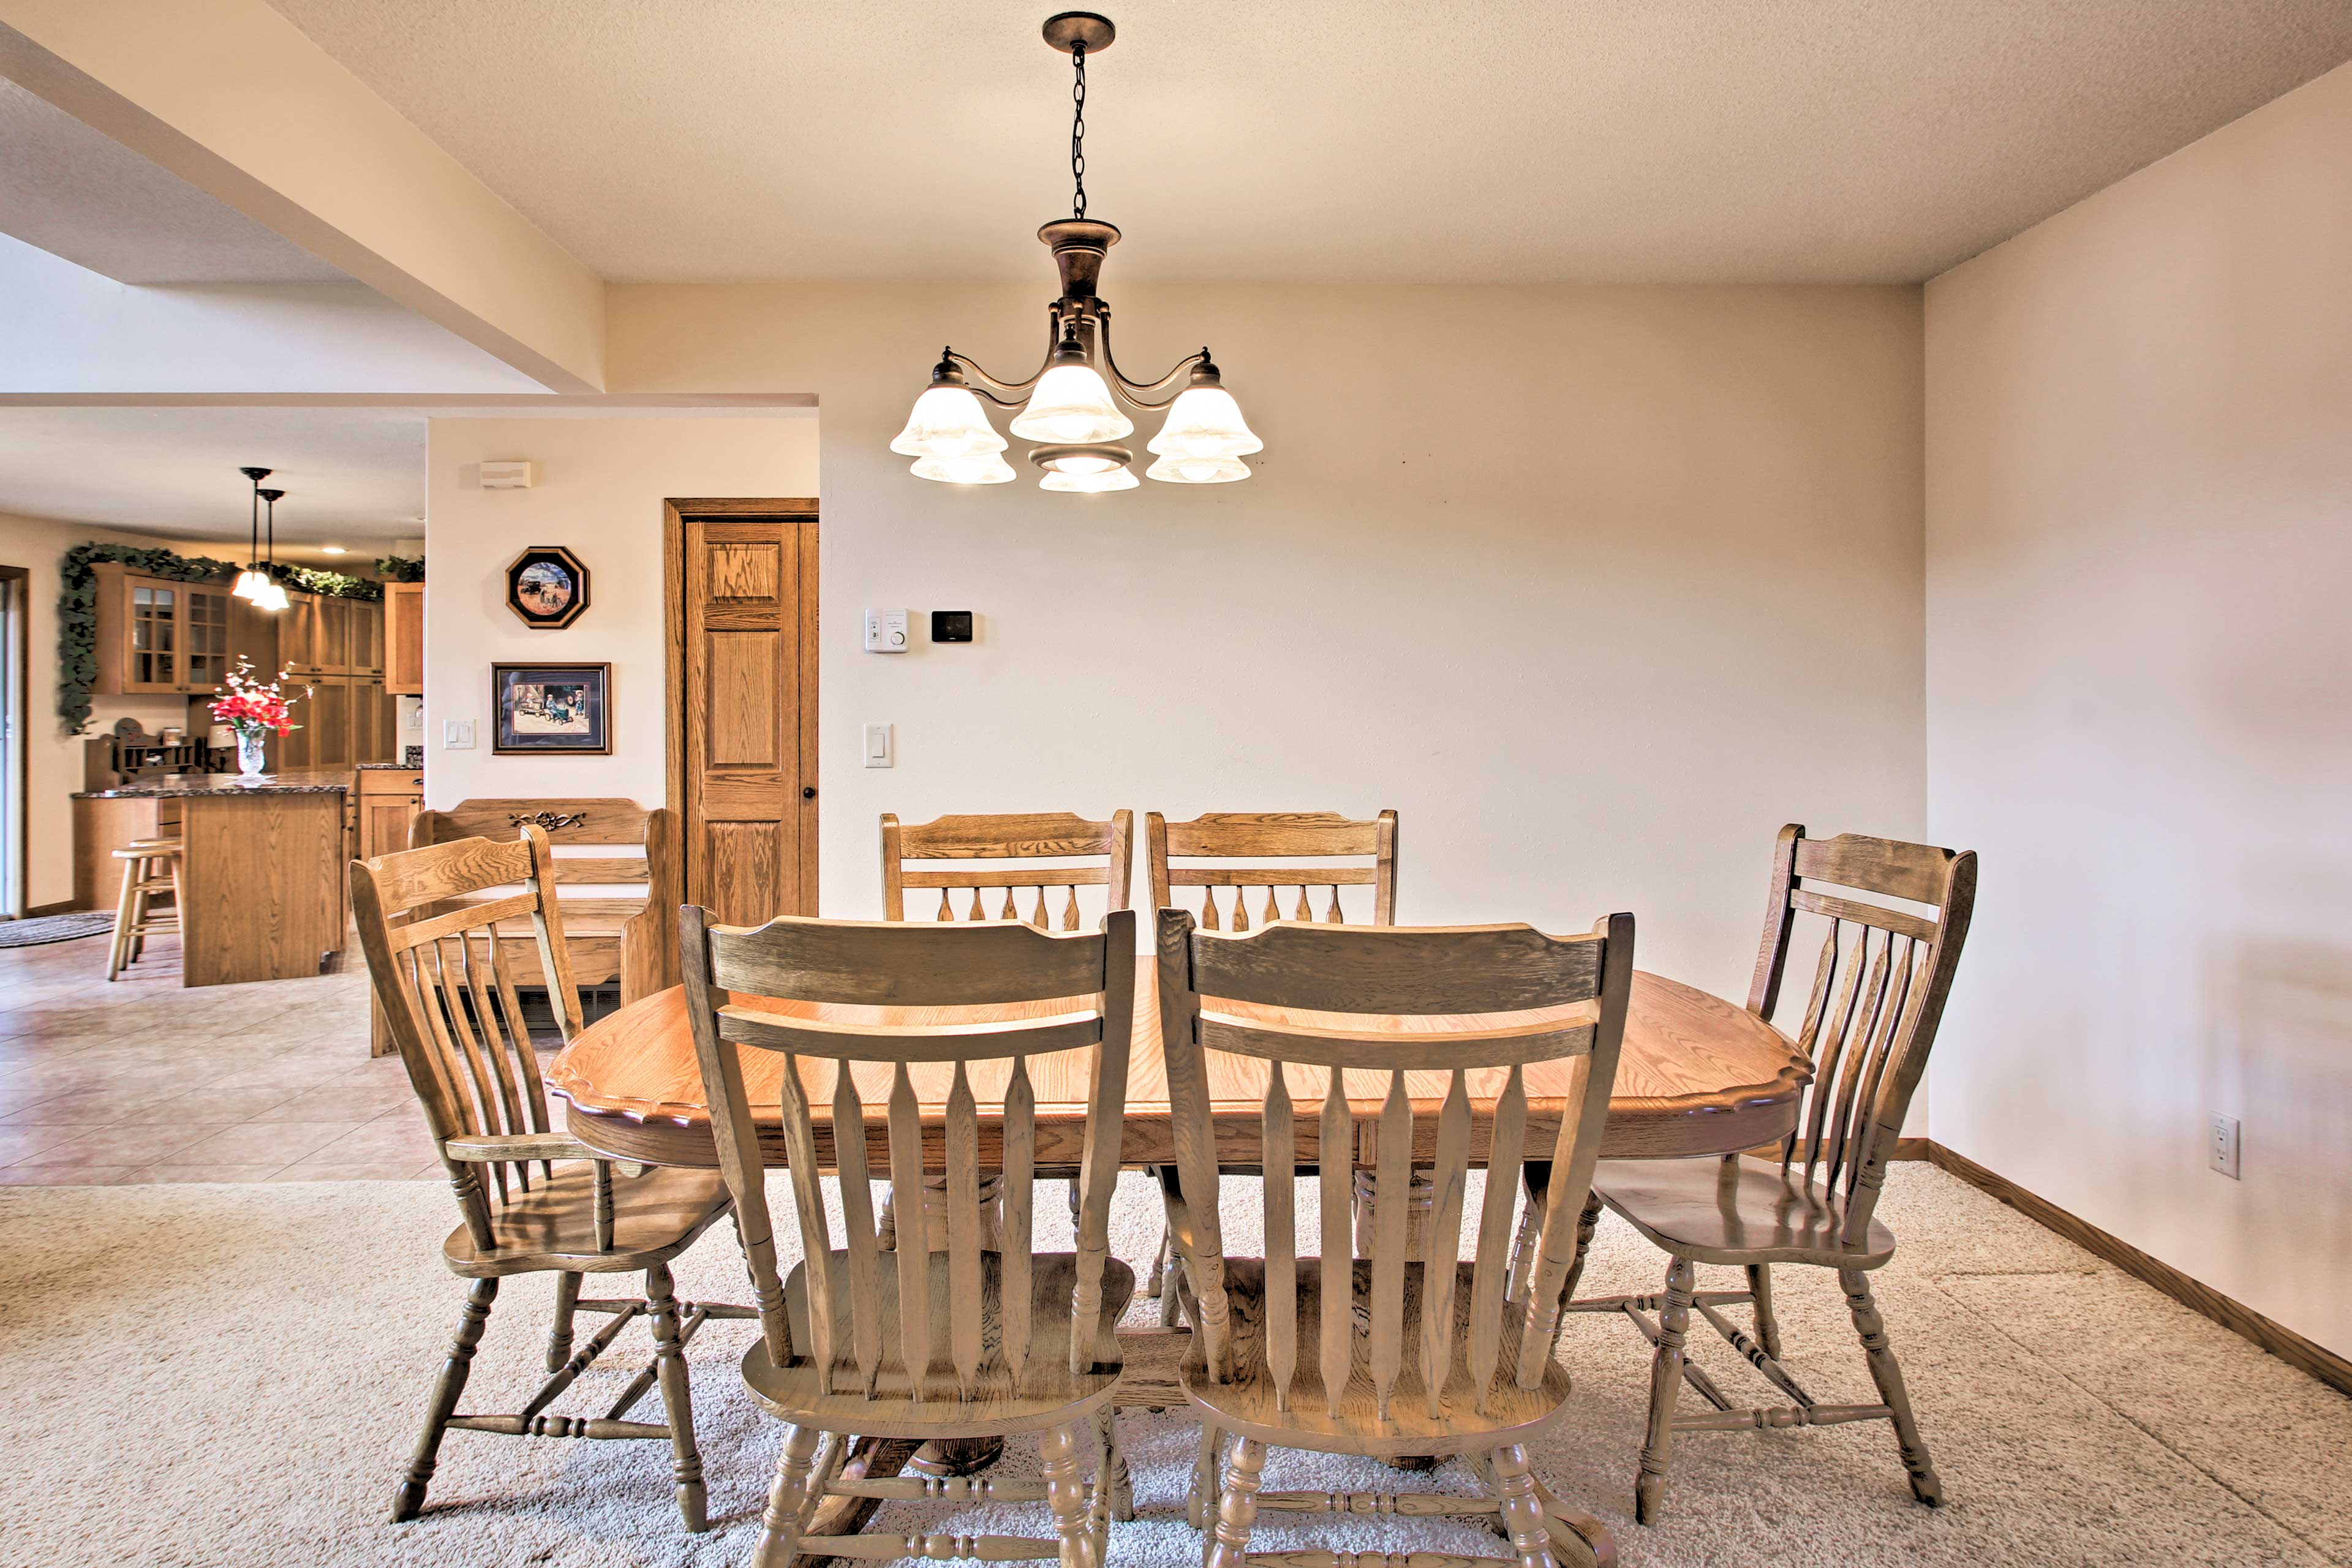 Find additional seating for meals in the dining nook.